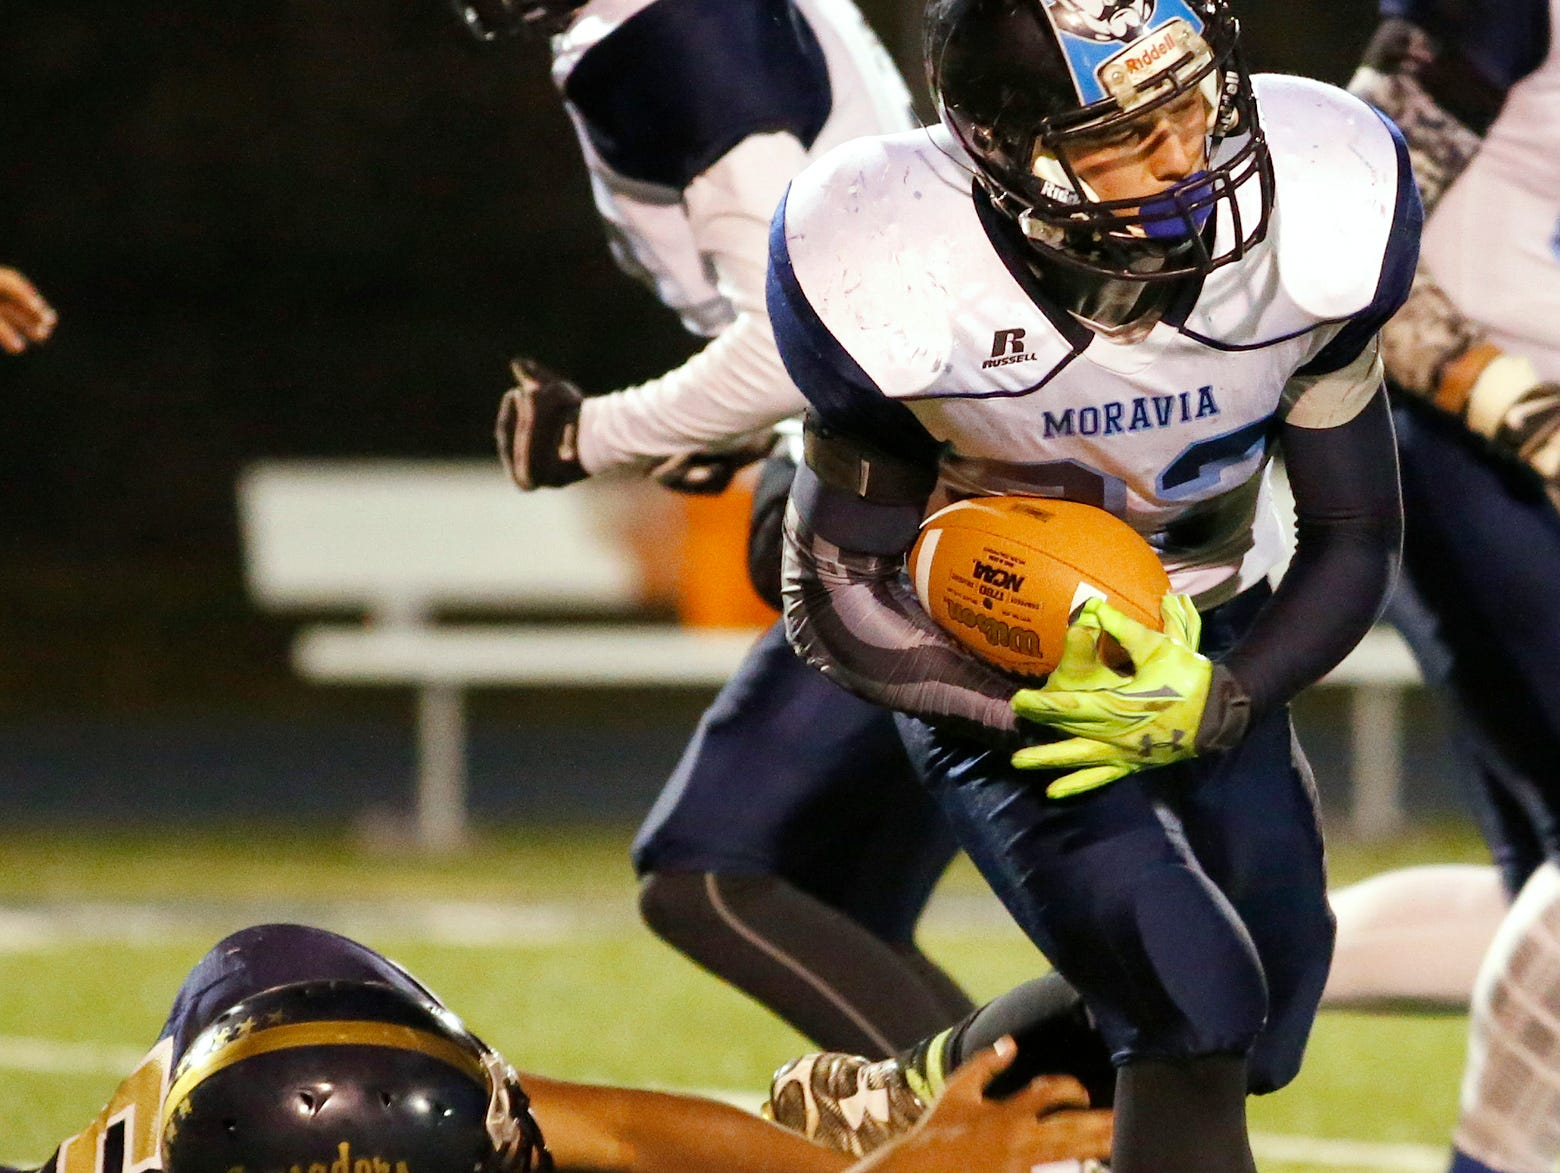 Notre Dame's Dimitrius Stanley grasps at Moravia's Jared Lyon Friday night in the second quarter.